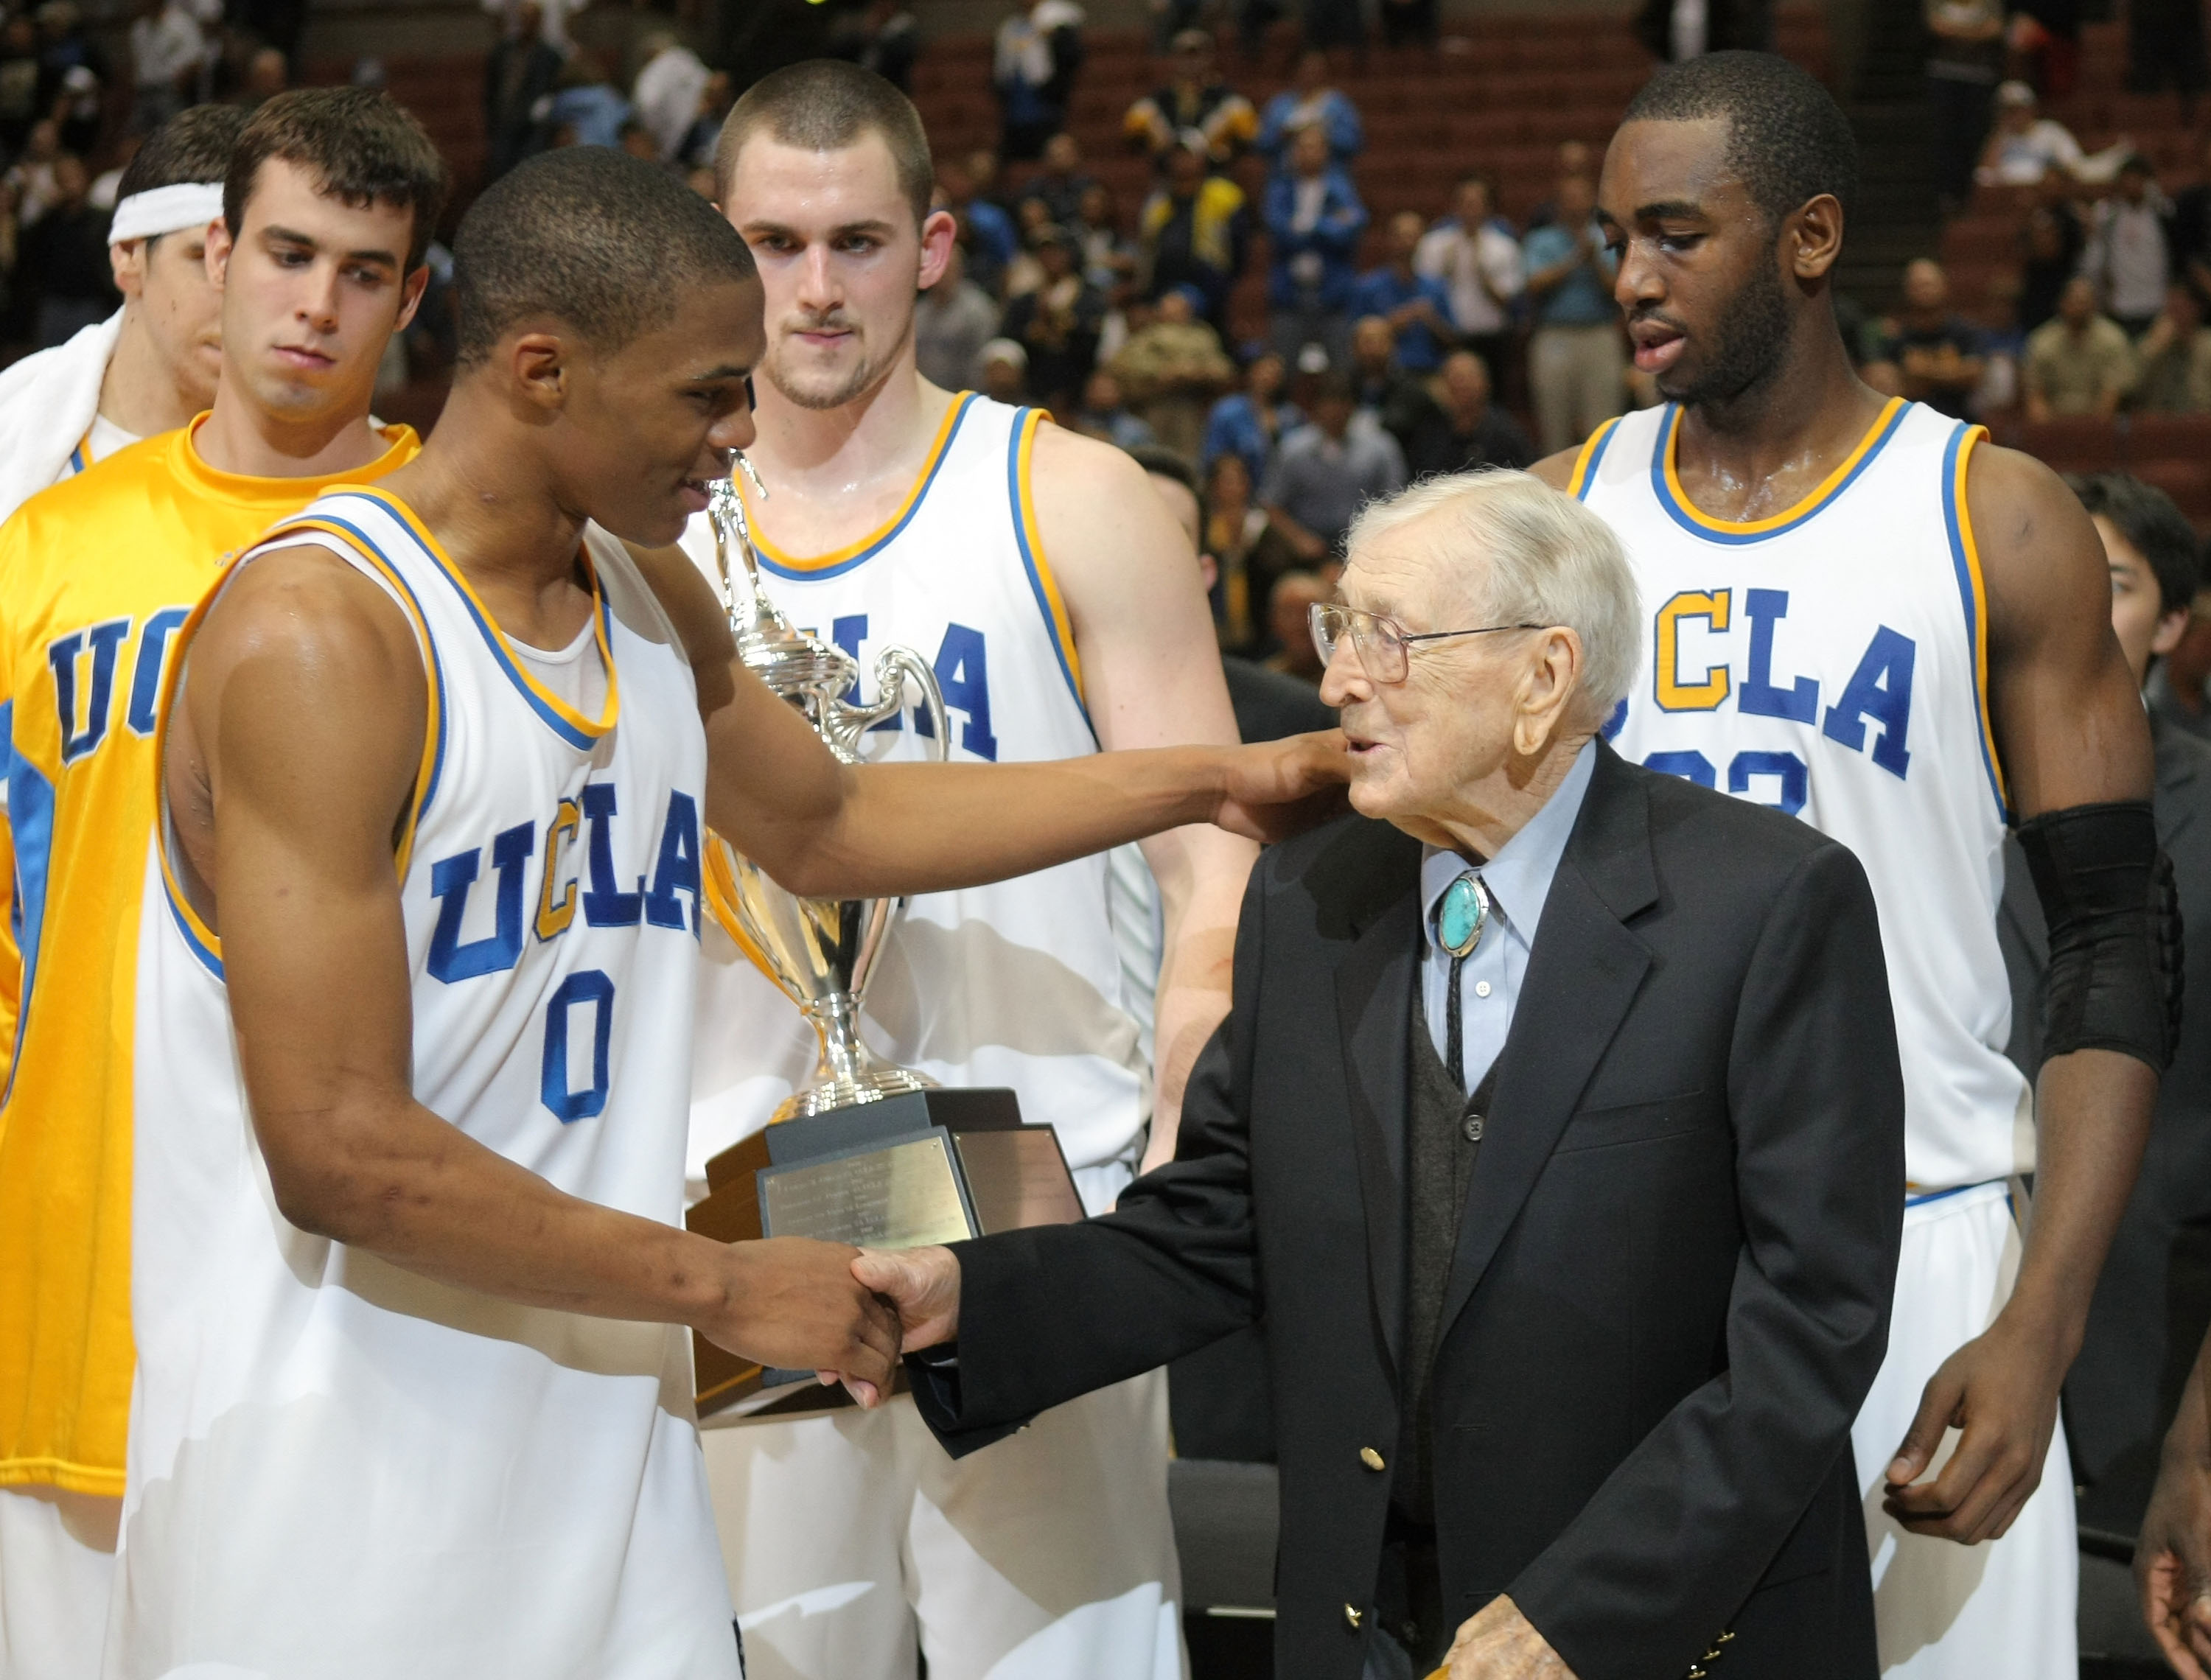 ANAHEIM, CA - DECEMBER 8:  Russell Westbrook #0 of the UCLA Bruins shakes hands with former college basketball coach John Wooden after a 75-63 win over the Davidson Wildcats during the John Wooden Classic at the Honda Center December 8, 2007 in Anaheim, C